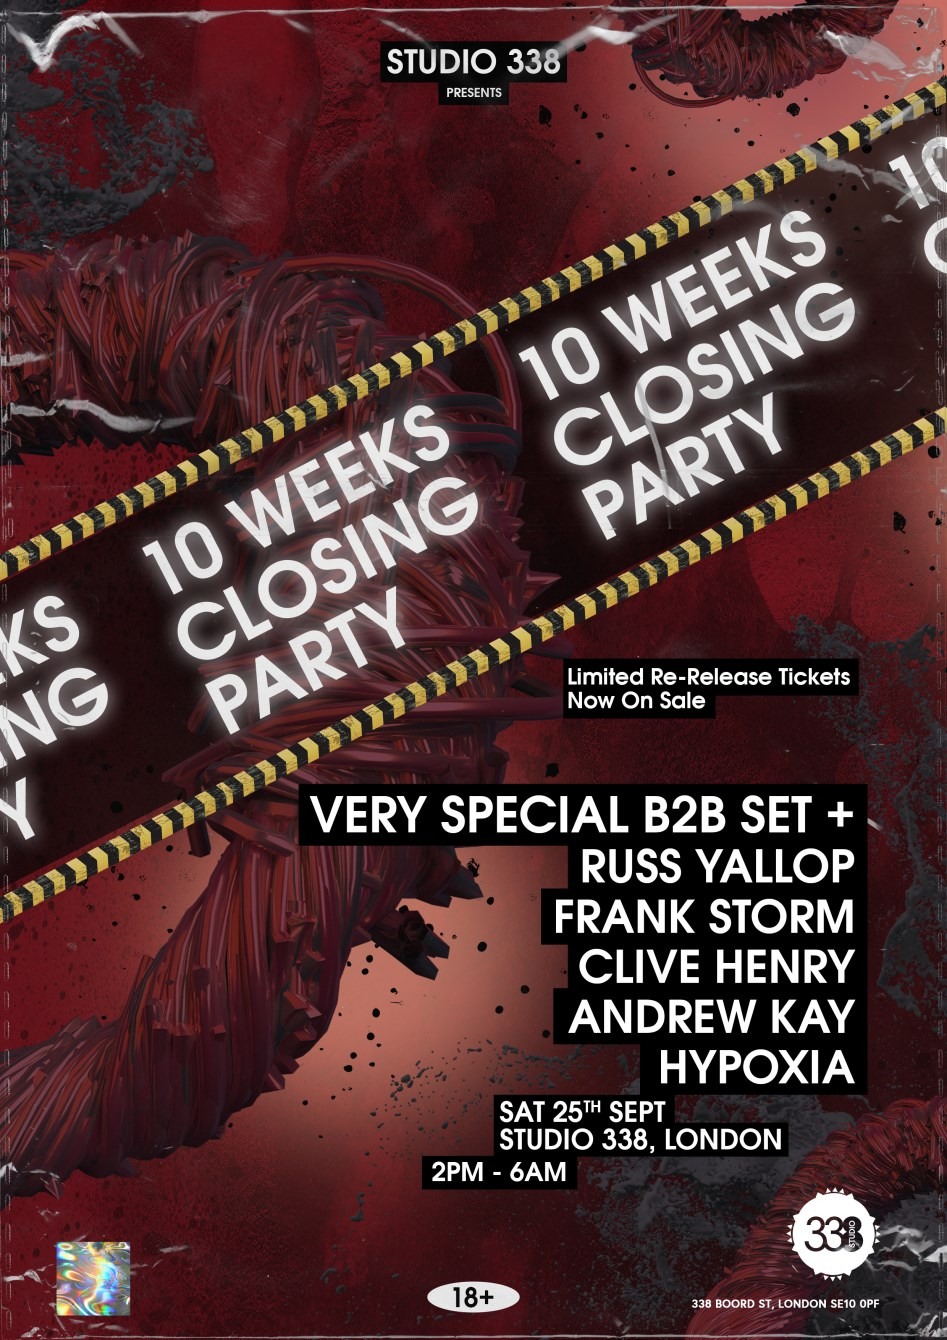 10 Weeks - Summer Closing Party (Limited Re-Release Tickets Now On Sale) - Flyer front